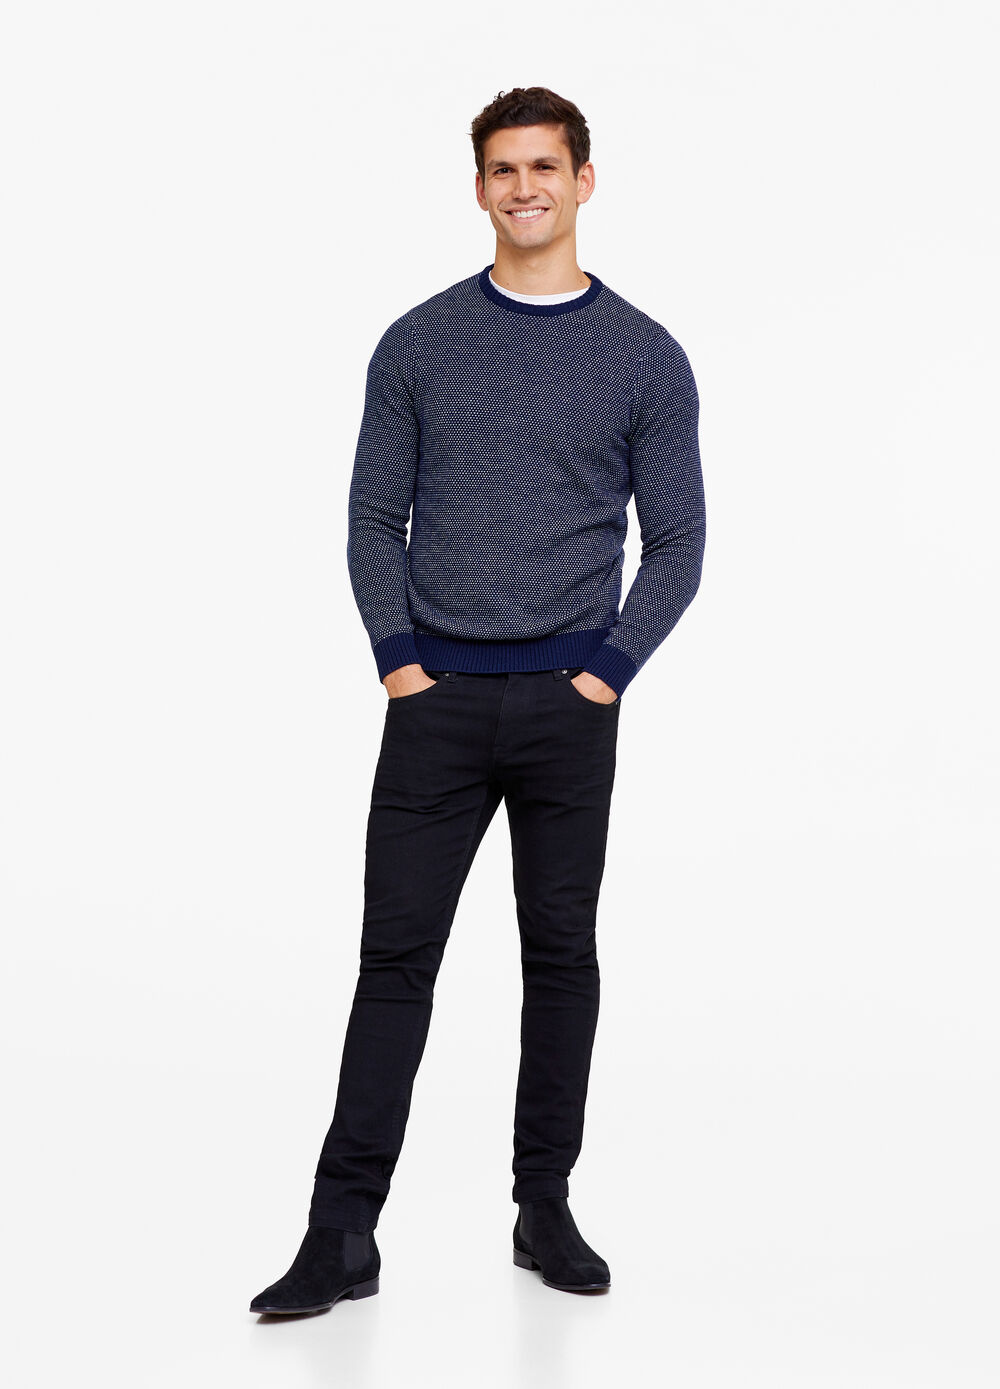 Lamb's wool blend pullover